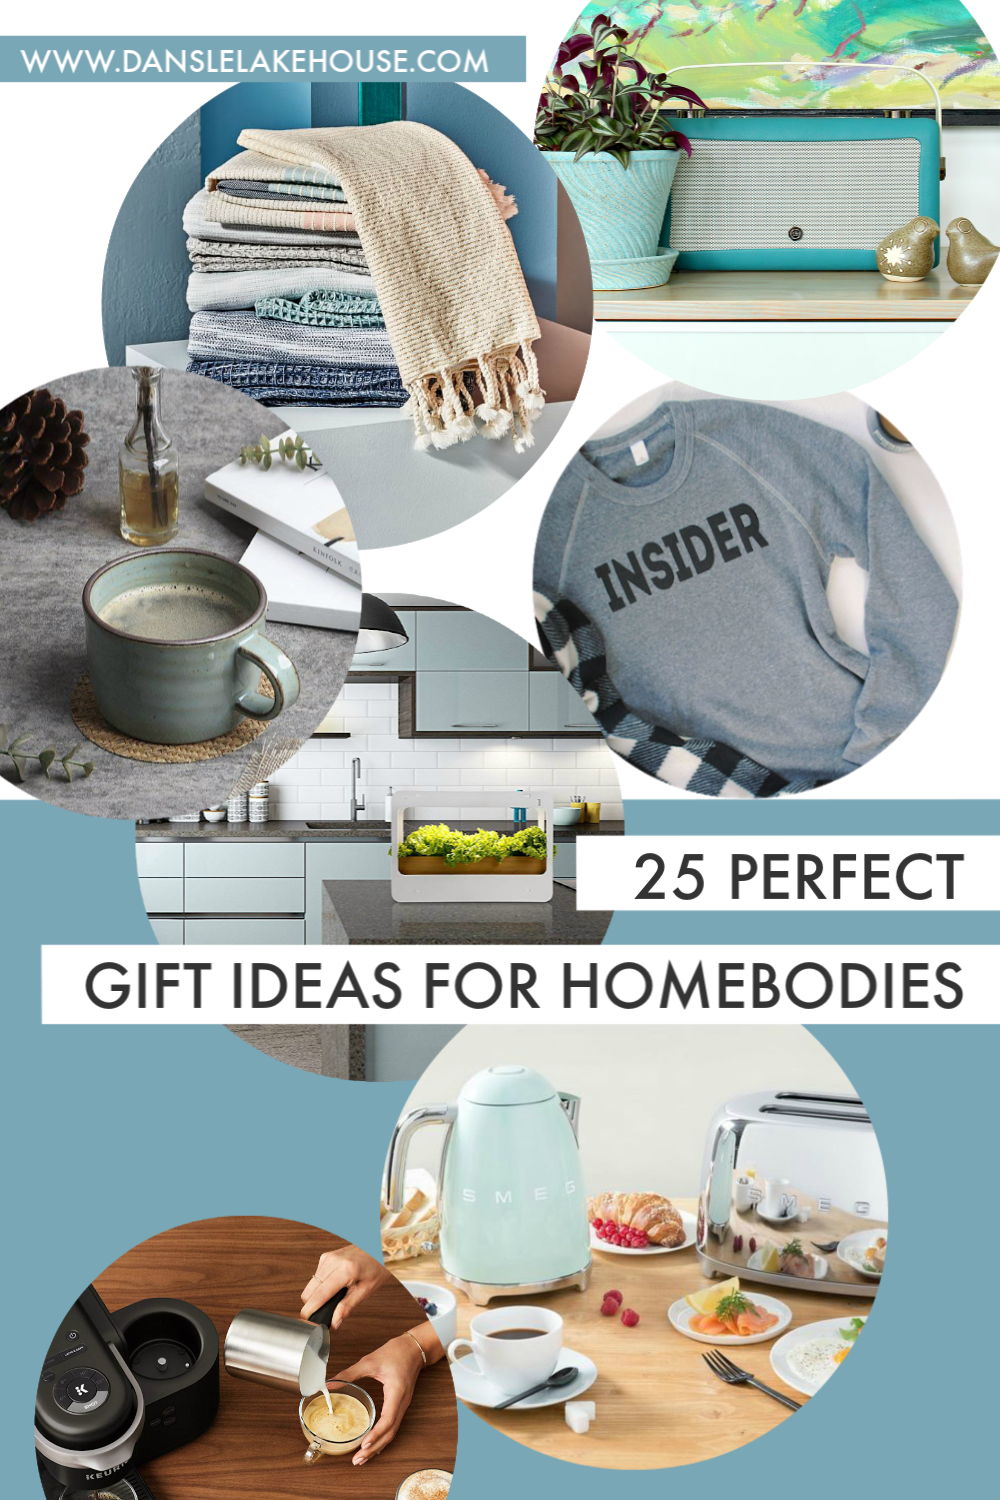 Holiday Gift Guide: 25 Gift Ideas for Homebodies 2018